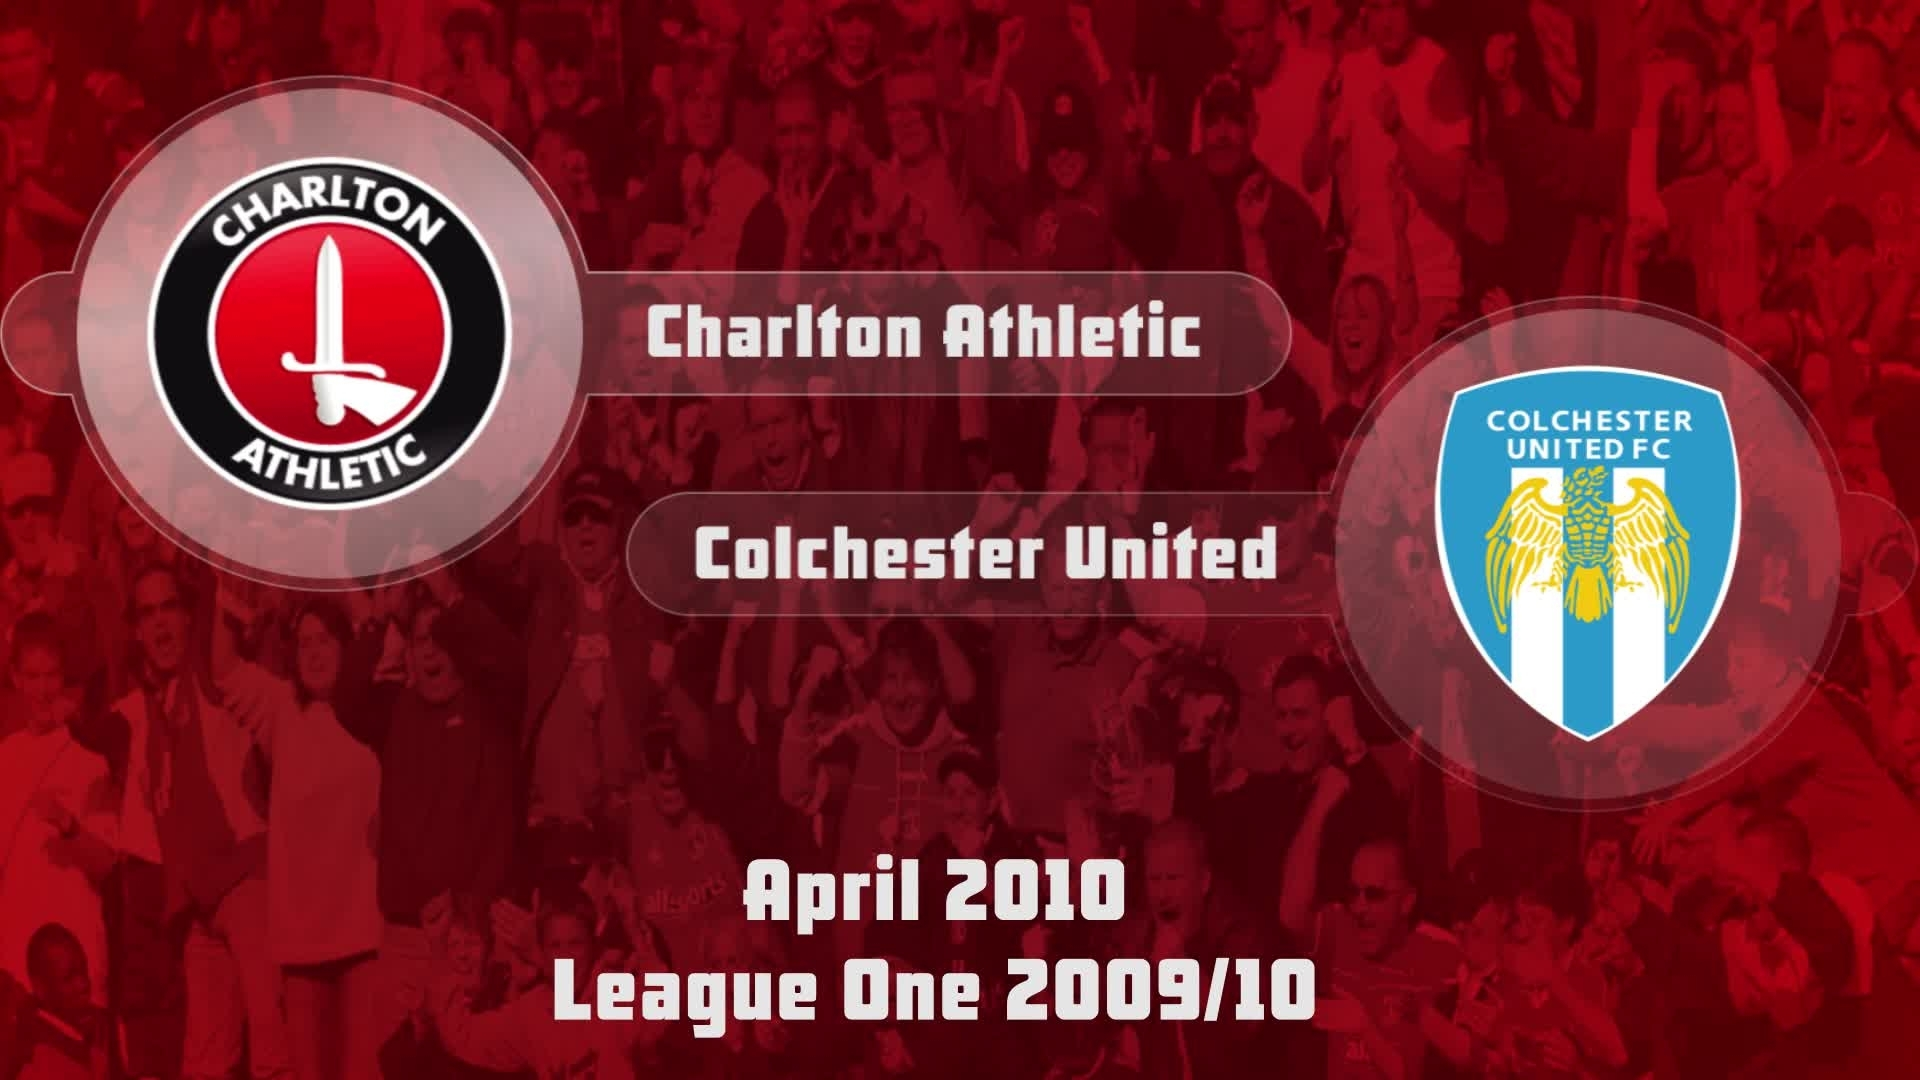 46 HIGHLIGHTS | Charlton 1 Colchester 0 (April 2010)